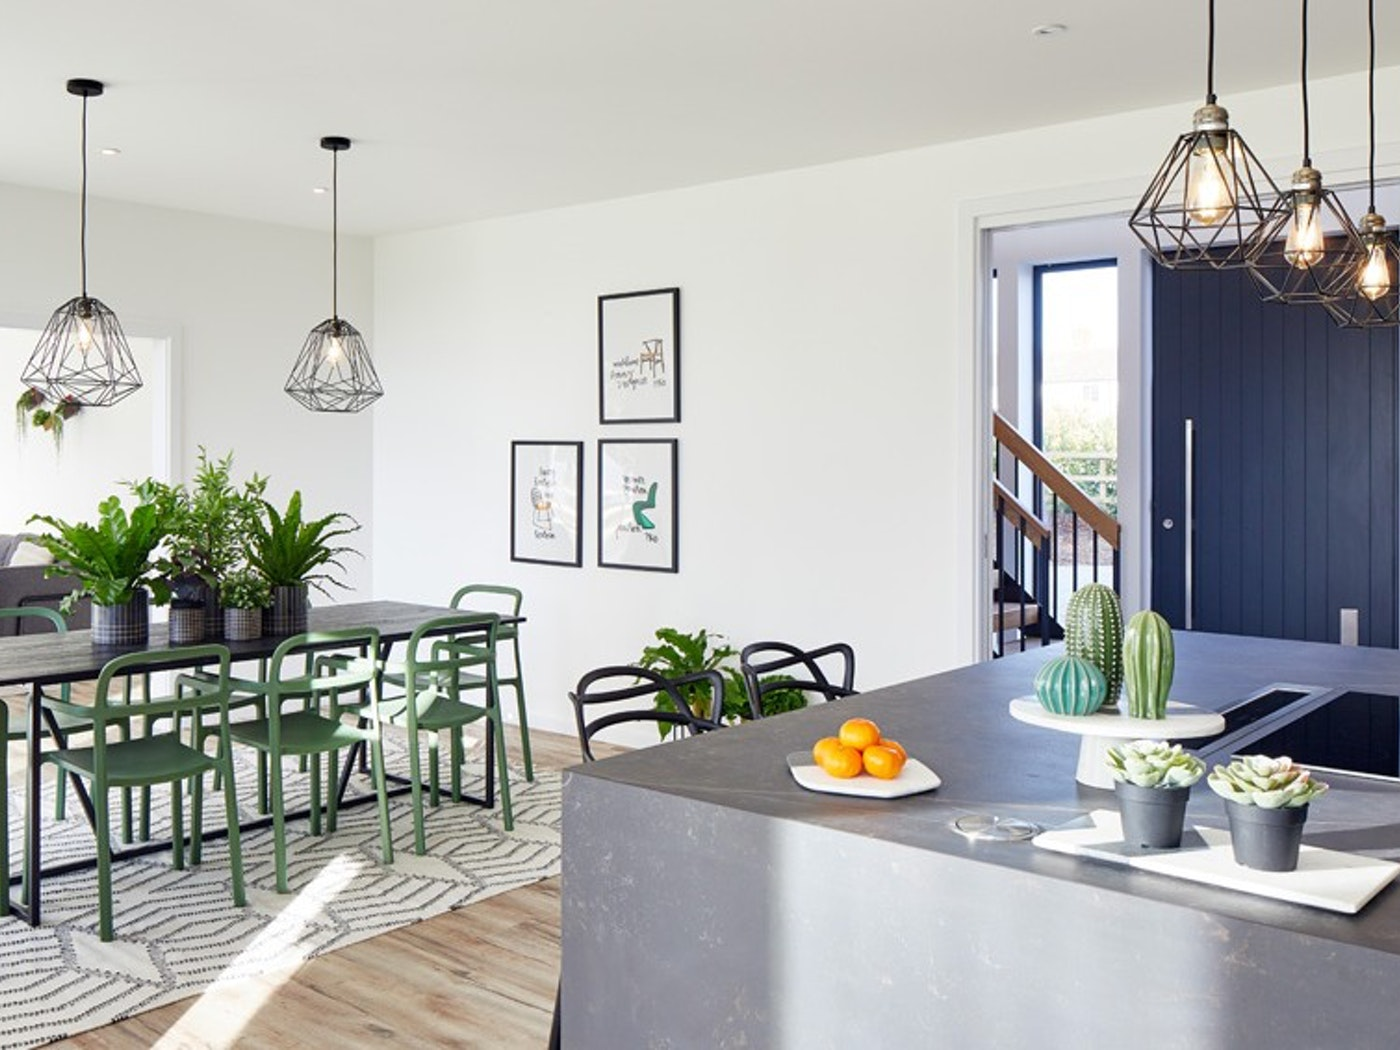 The contemporary feel is continued internally with accents of concrete & green